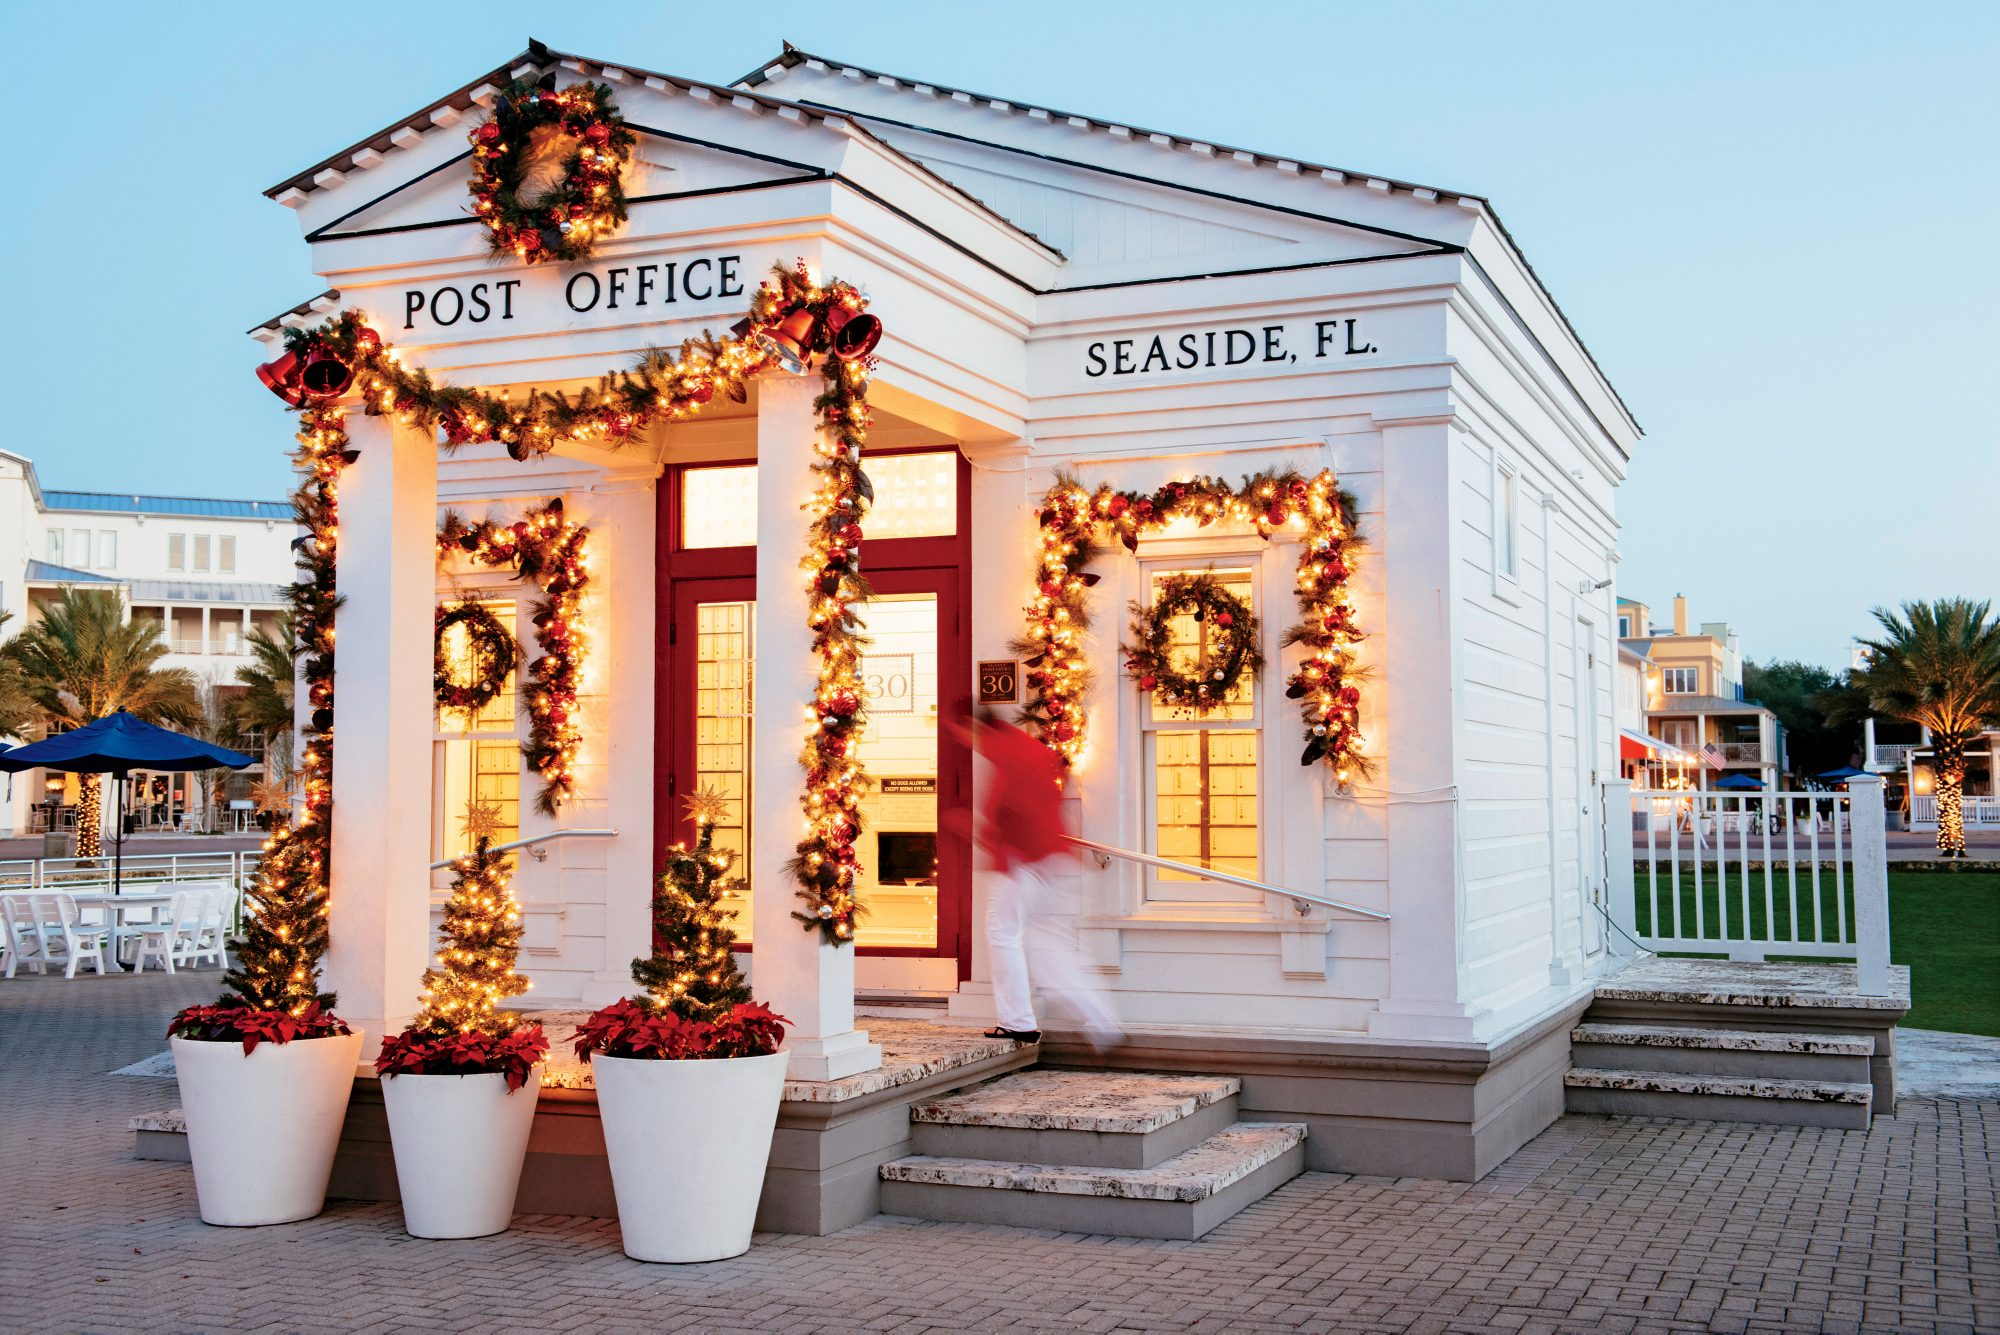 The Best Small Towns For Christmas In The South